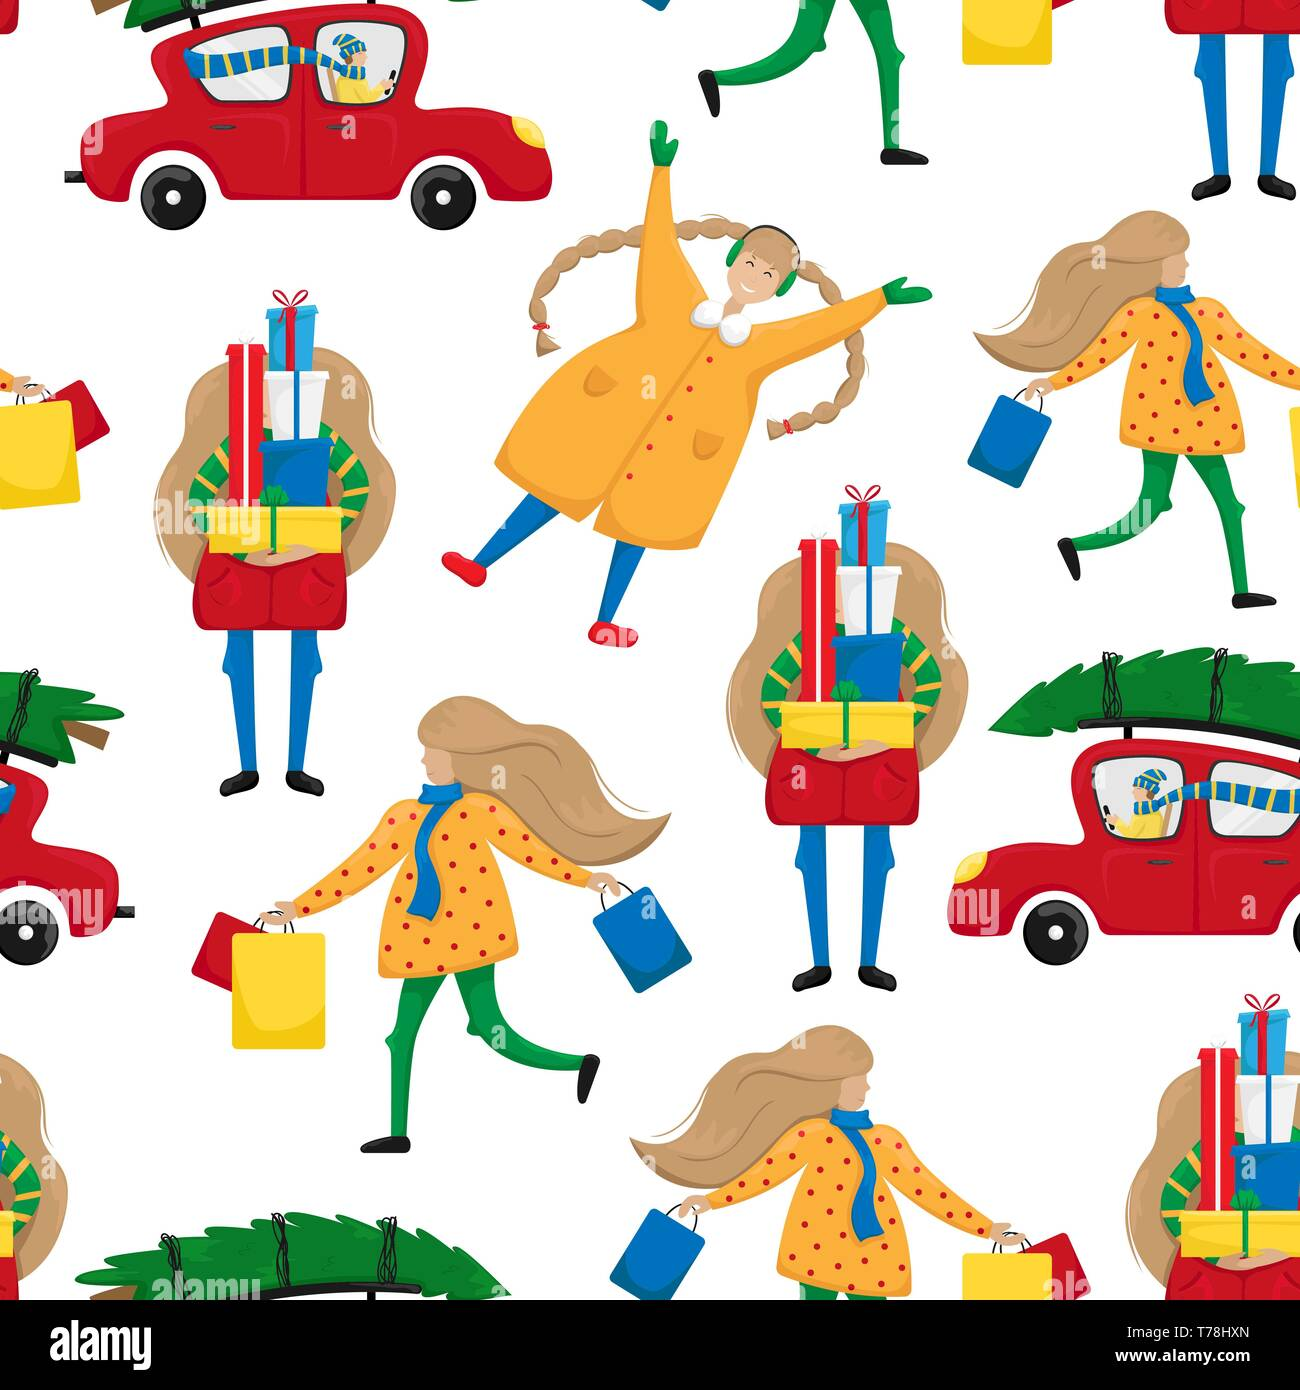 Christmas mood. Seamless pattern with people in fuss for a Christian holiday. Perfect for postcards, wrapping paper, fabrics - Stock Image